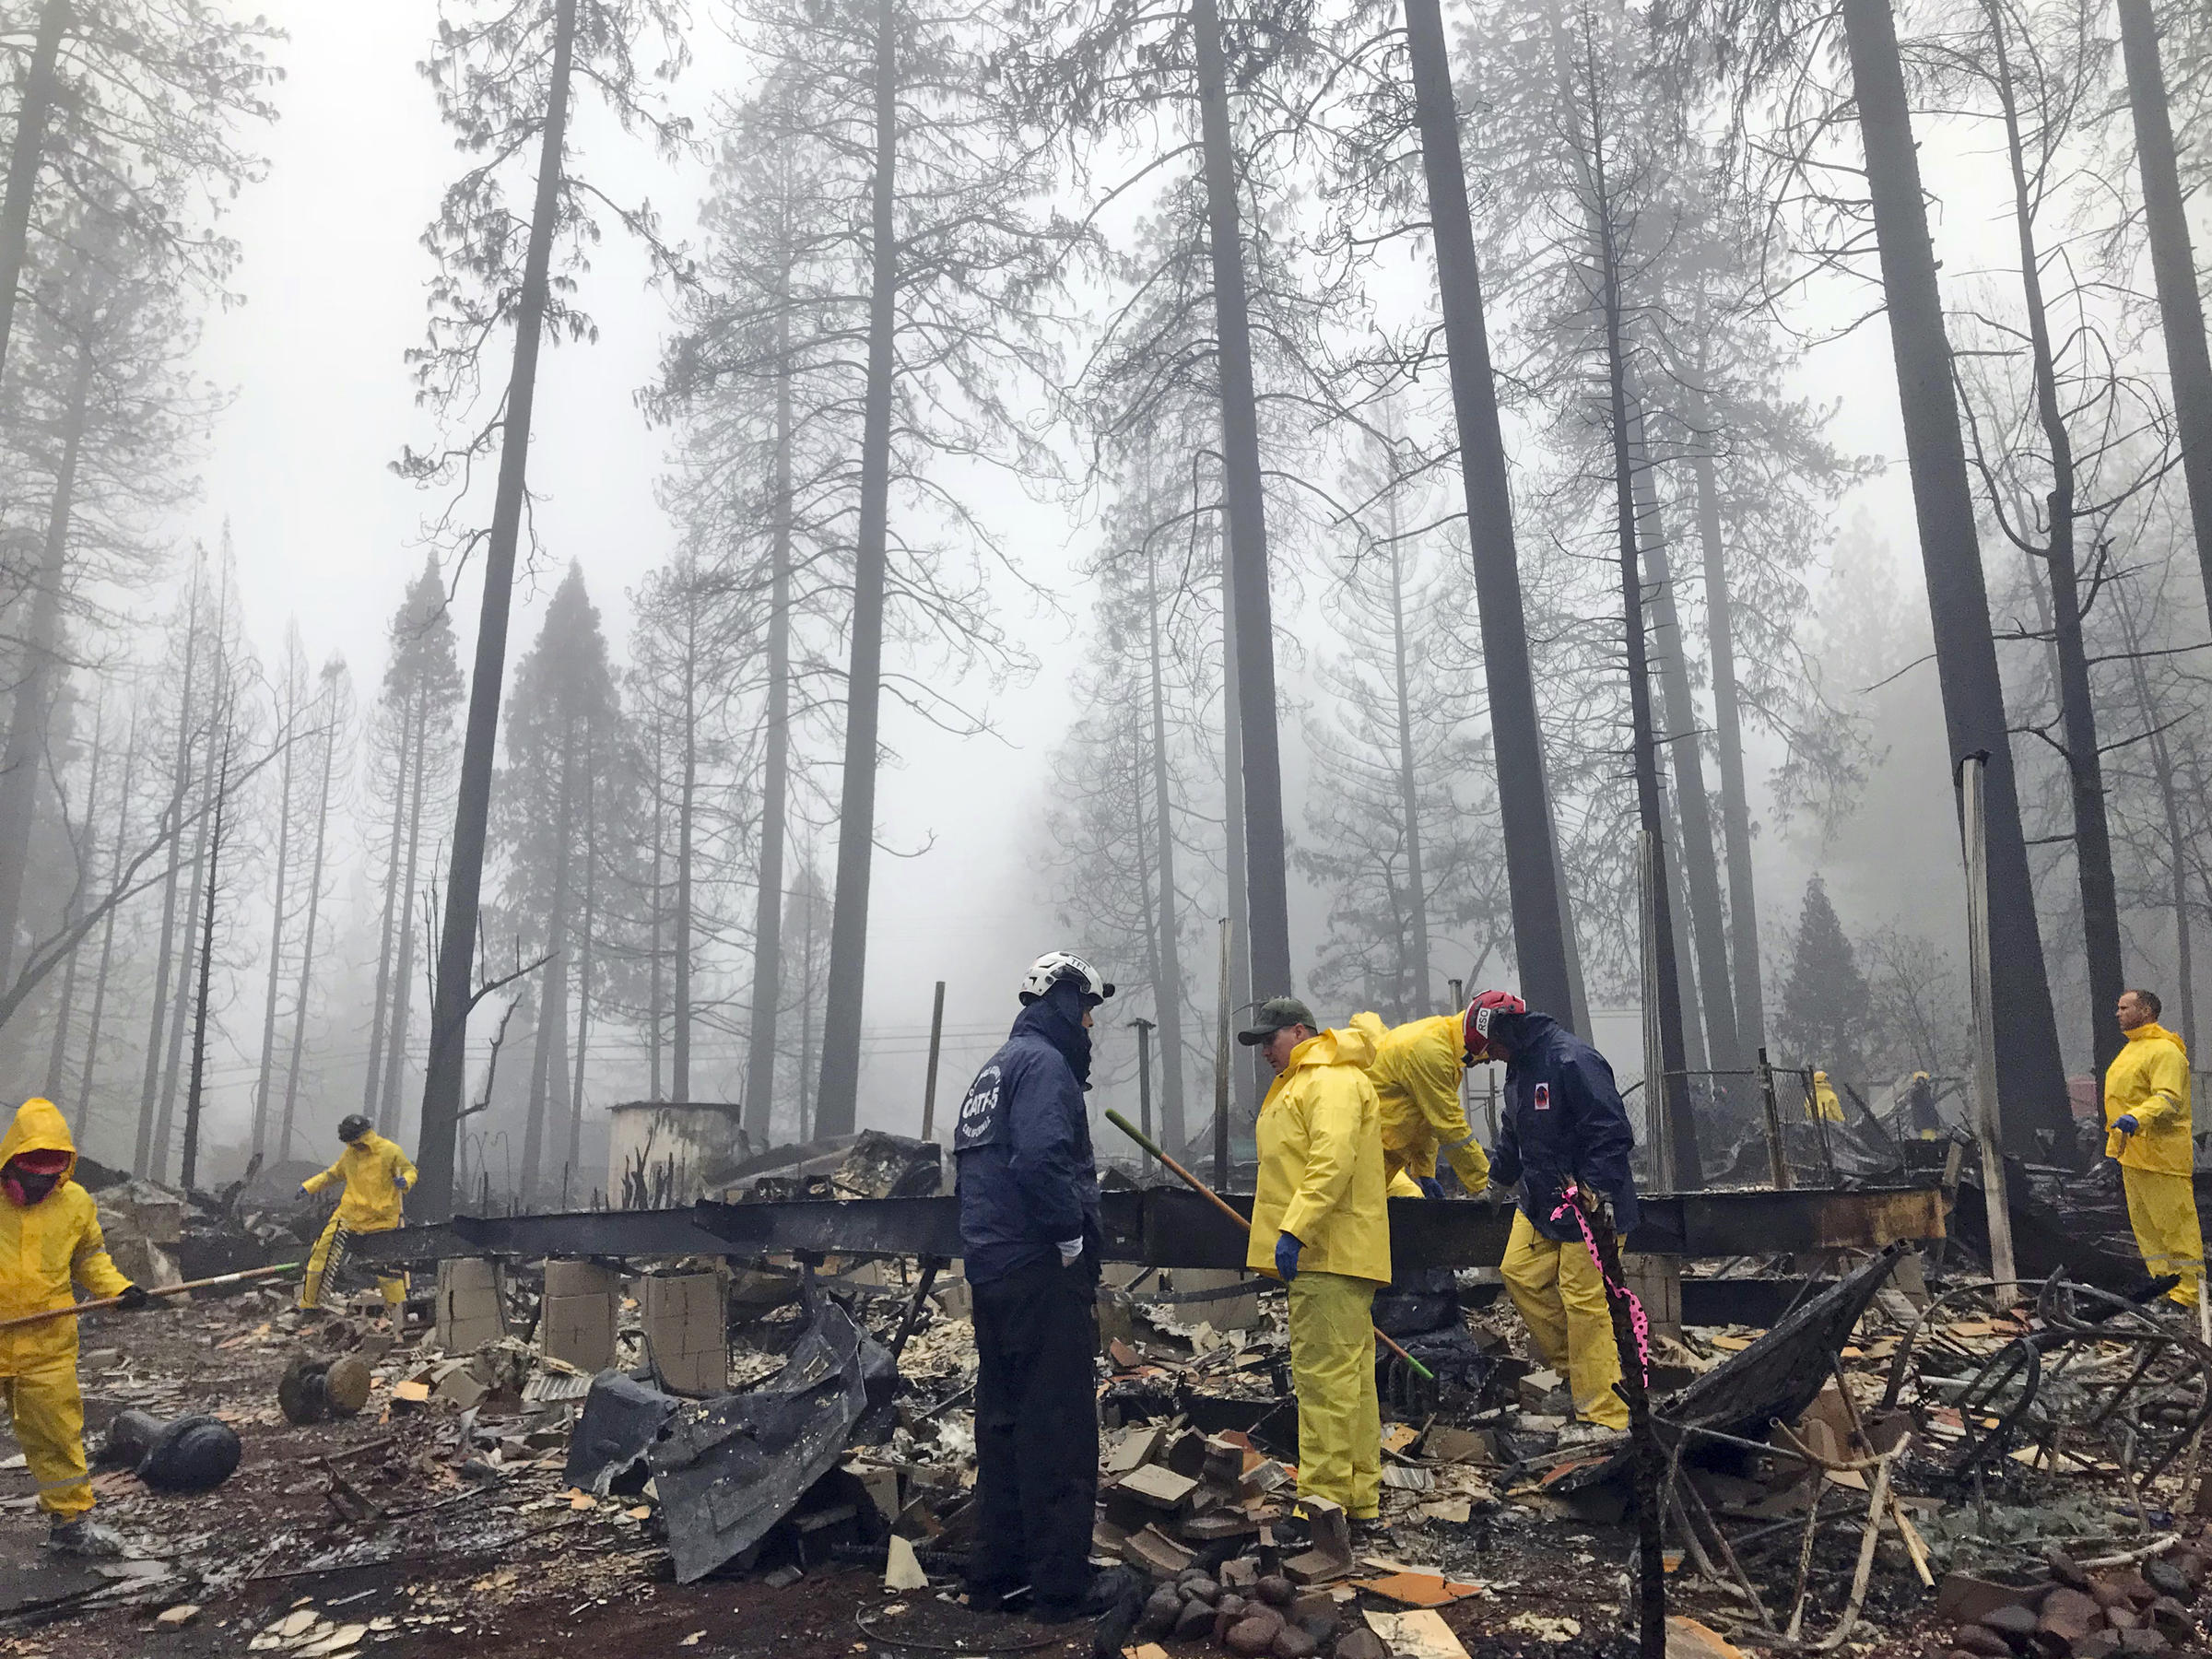 California's deadliest wildfire fully contained